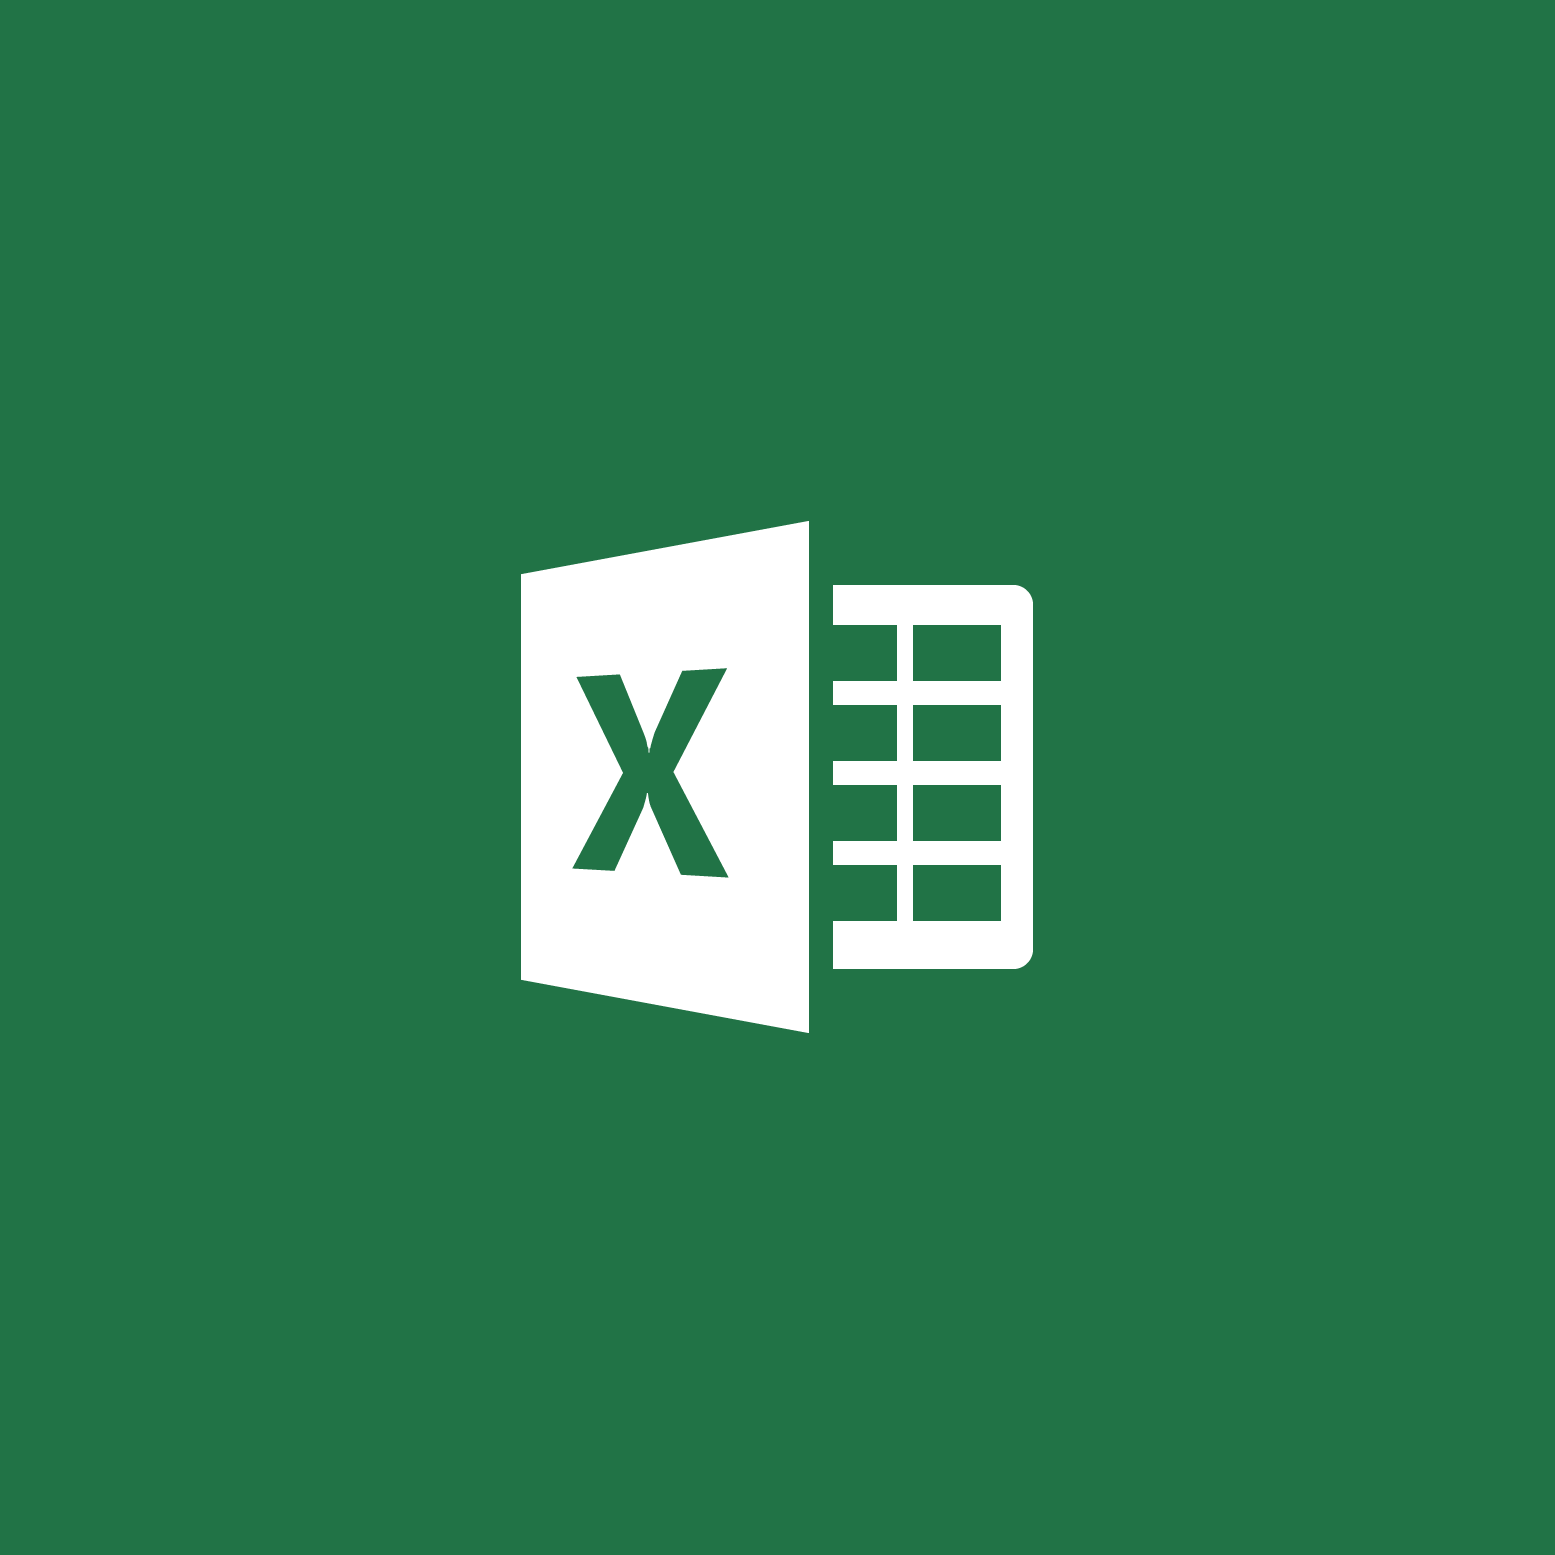 Using Python to Convert Worksheets in an Excel File to Separate CSV